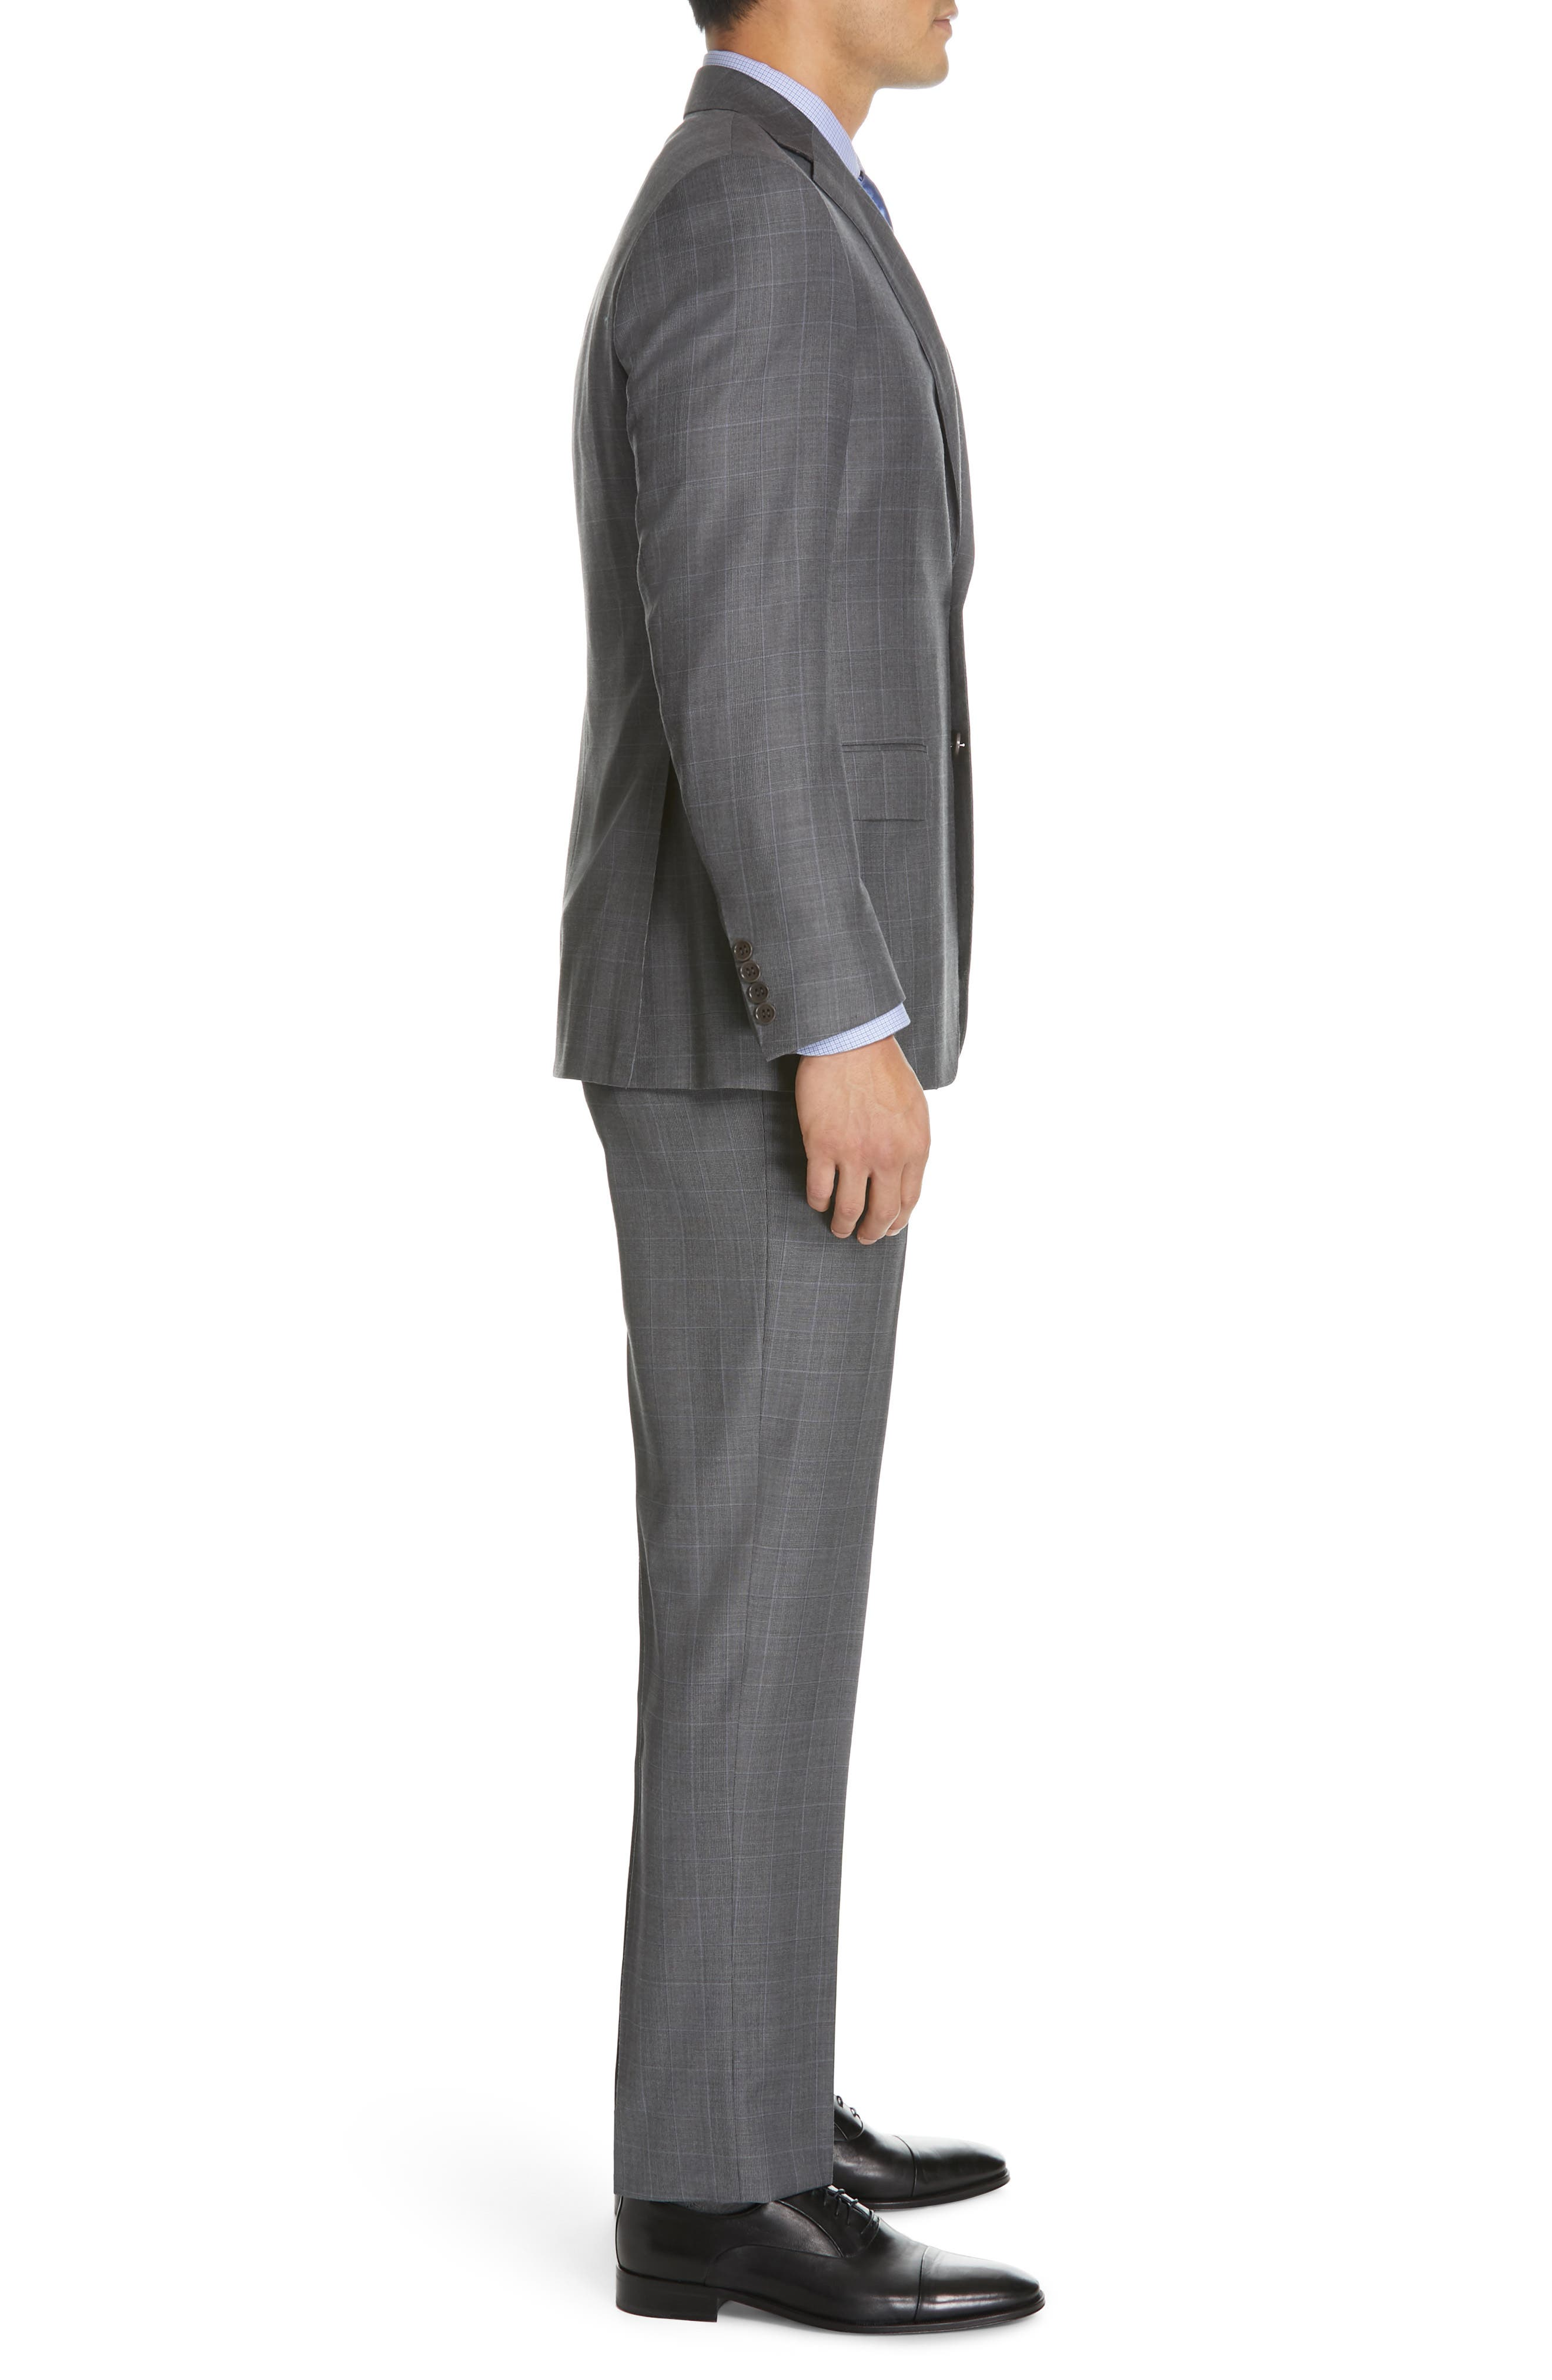 CANALI, Sienna Classic Fit Plaid Wool Suit, Alternate thumbnail 3, color, GREY